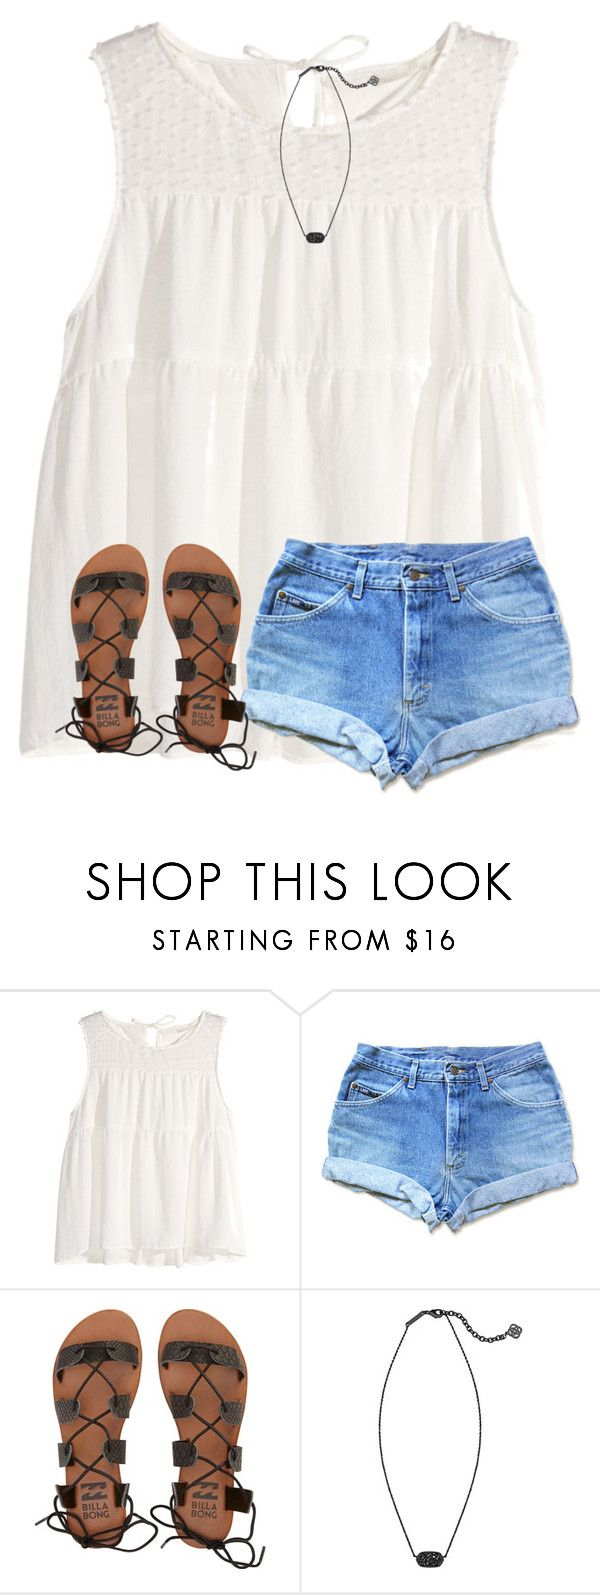 """in love with Jordan Spieth"" by ponyboysgirlfriend ❤ liked on Polyvore featuring H&M, Billabong and Kendra Scott"